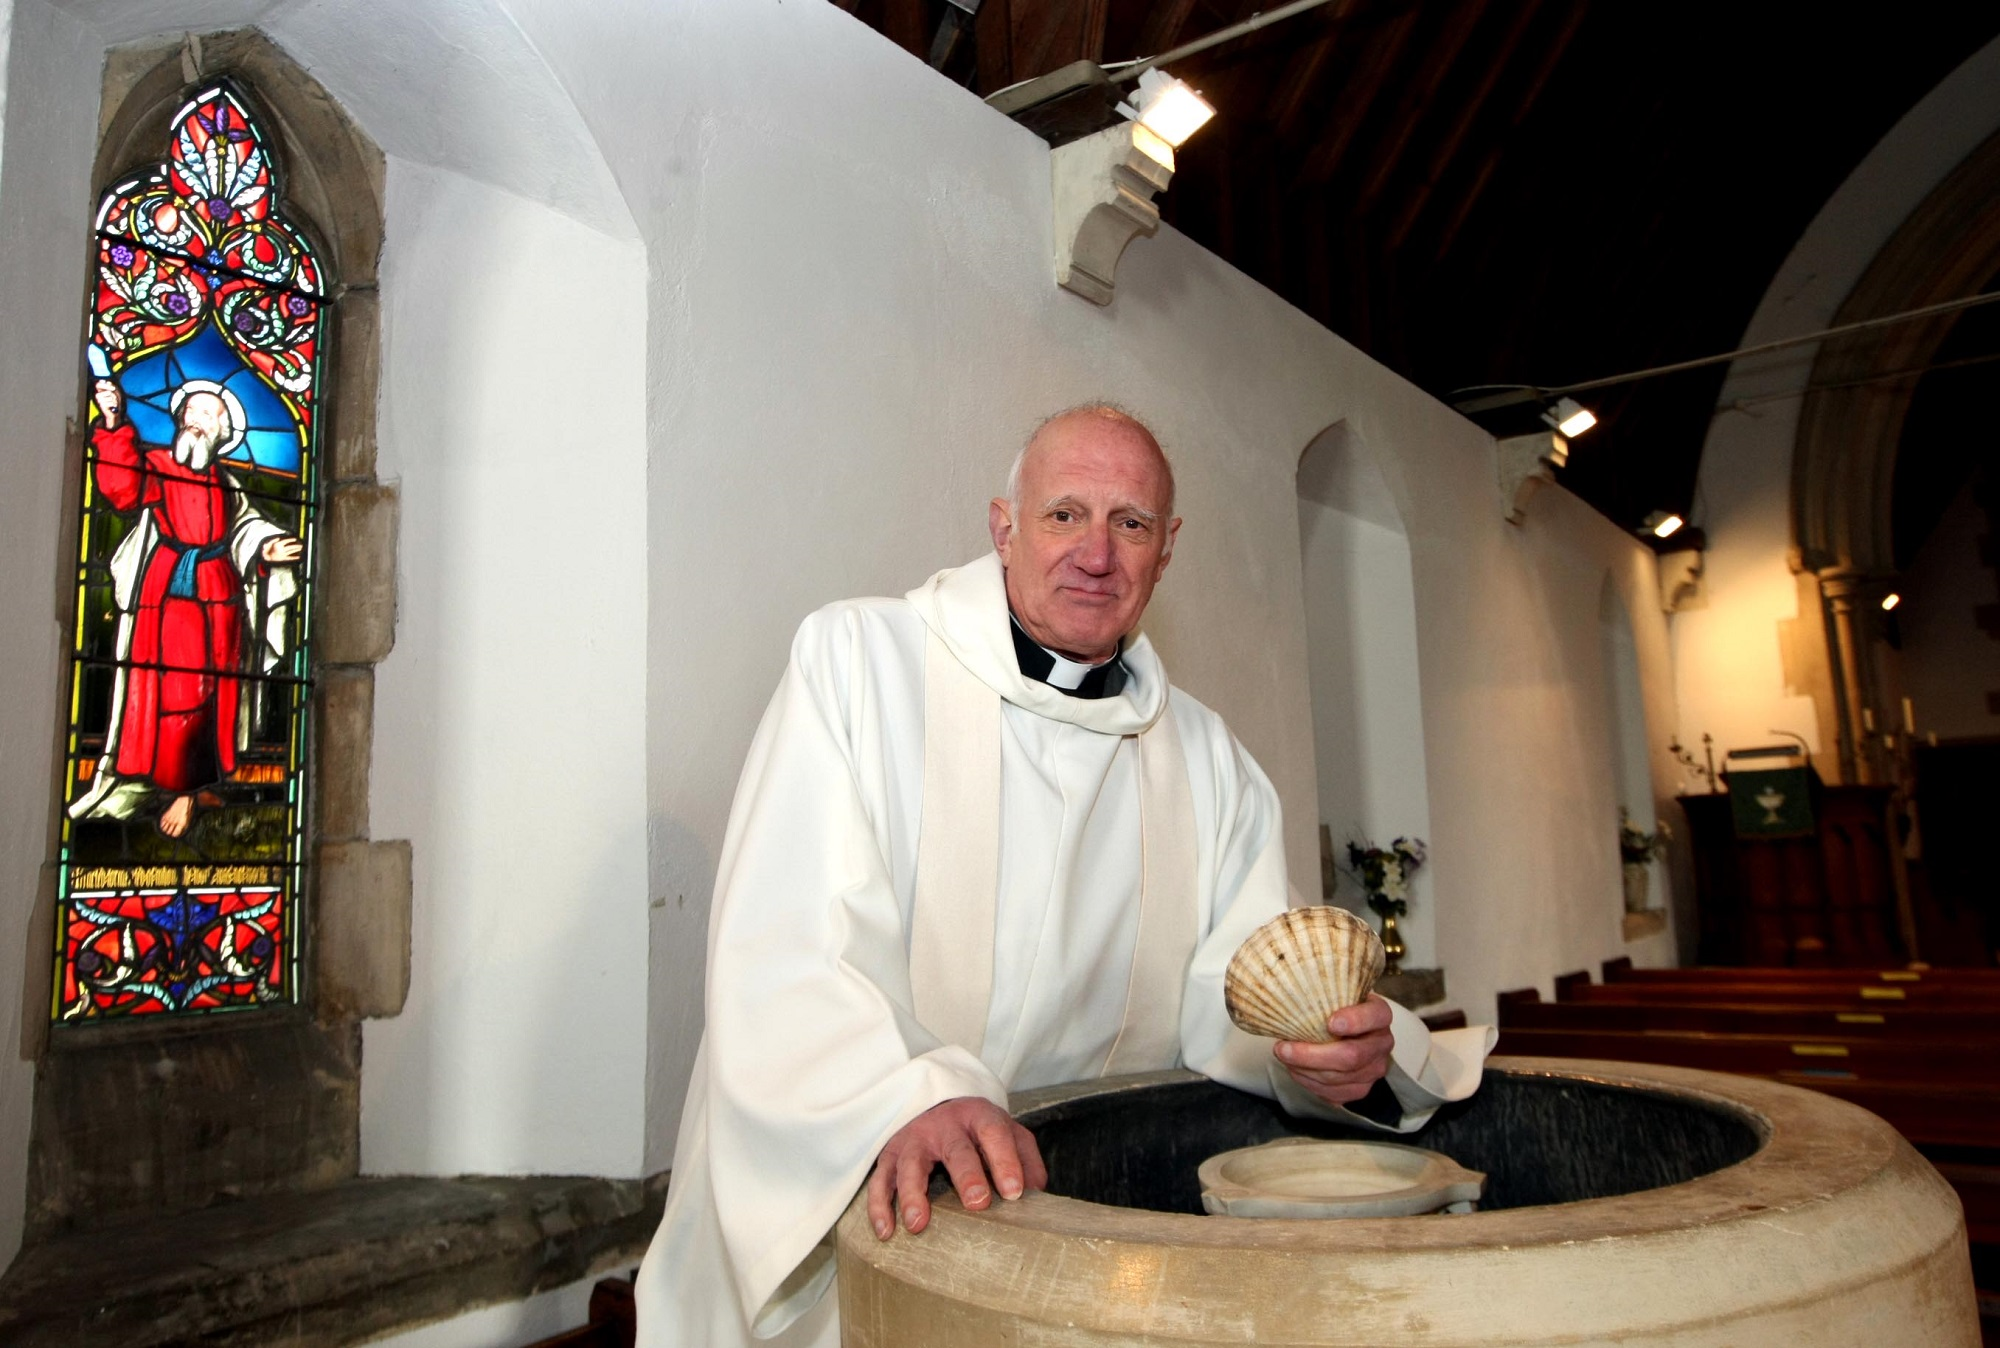 The Rev Ken Dunstan performed the ceremony at St Barnabas Church in Mayland